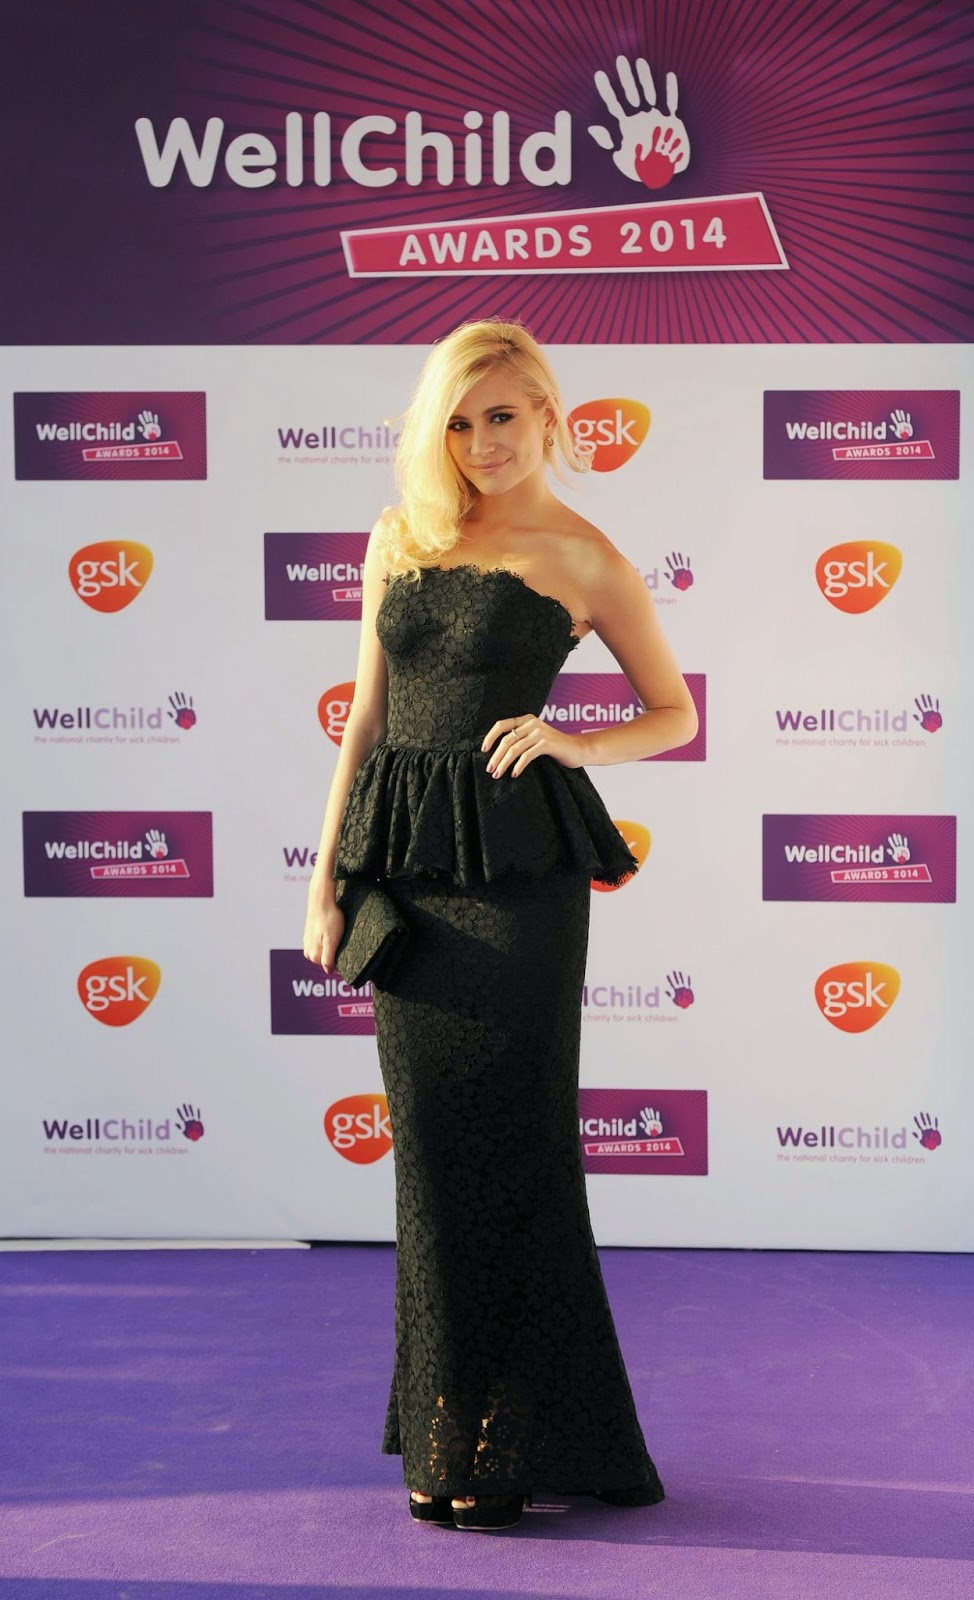 Pixie Lott flaunts a strapless black lace dress at the 2014 WellChild Awards in London